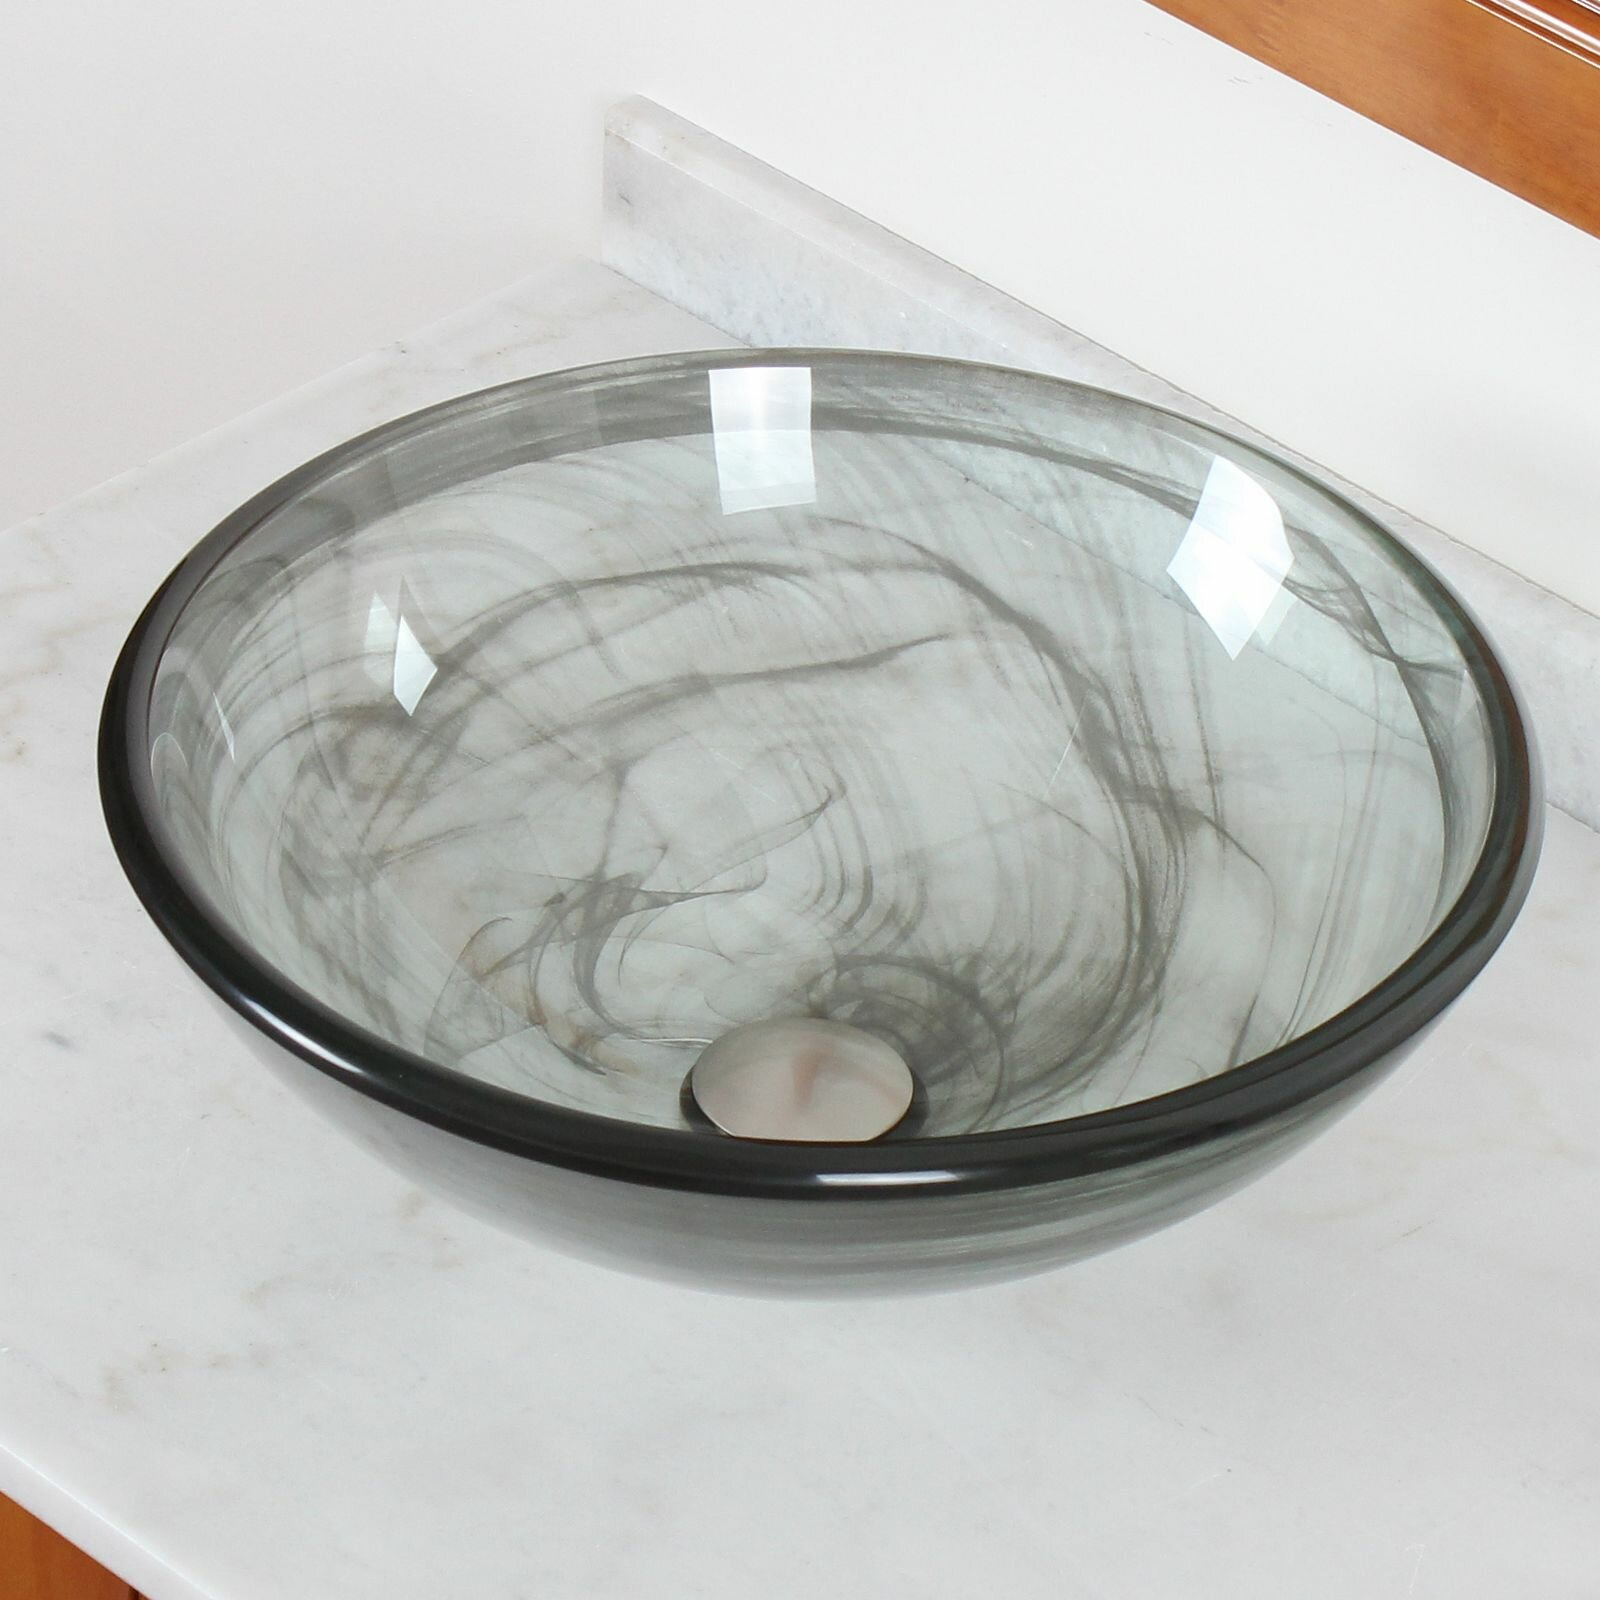 ... Layered Tempered Glass Bowl Vessel Bathroom Sink & Reviews Wayfair